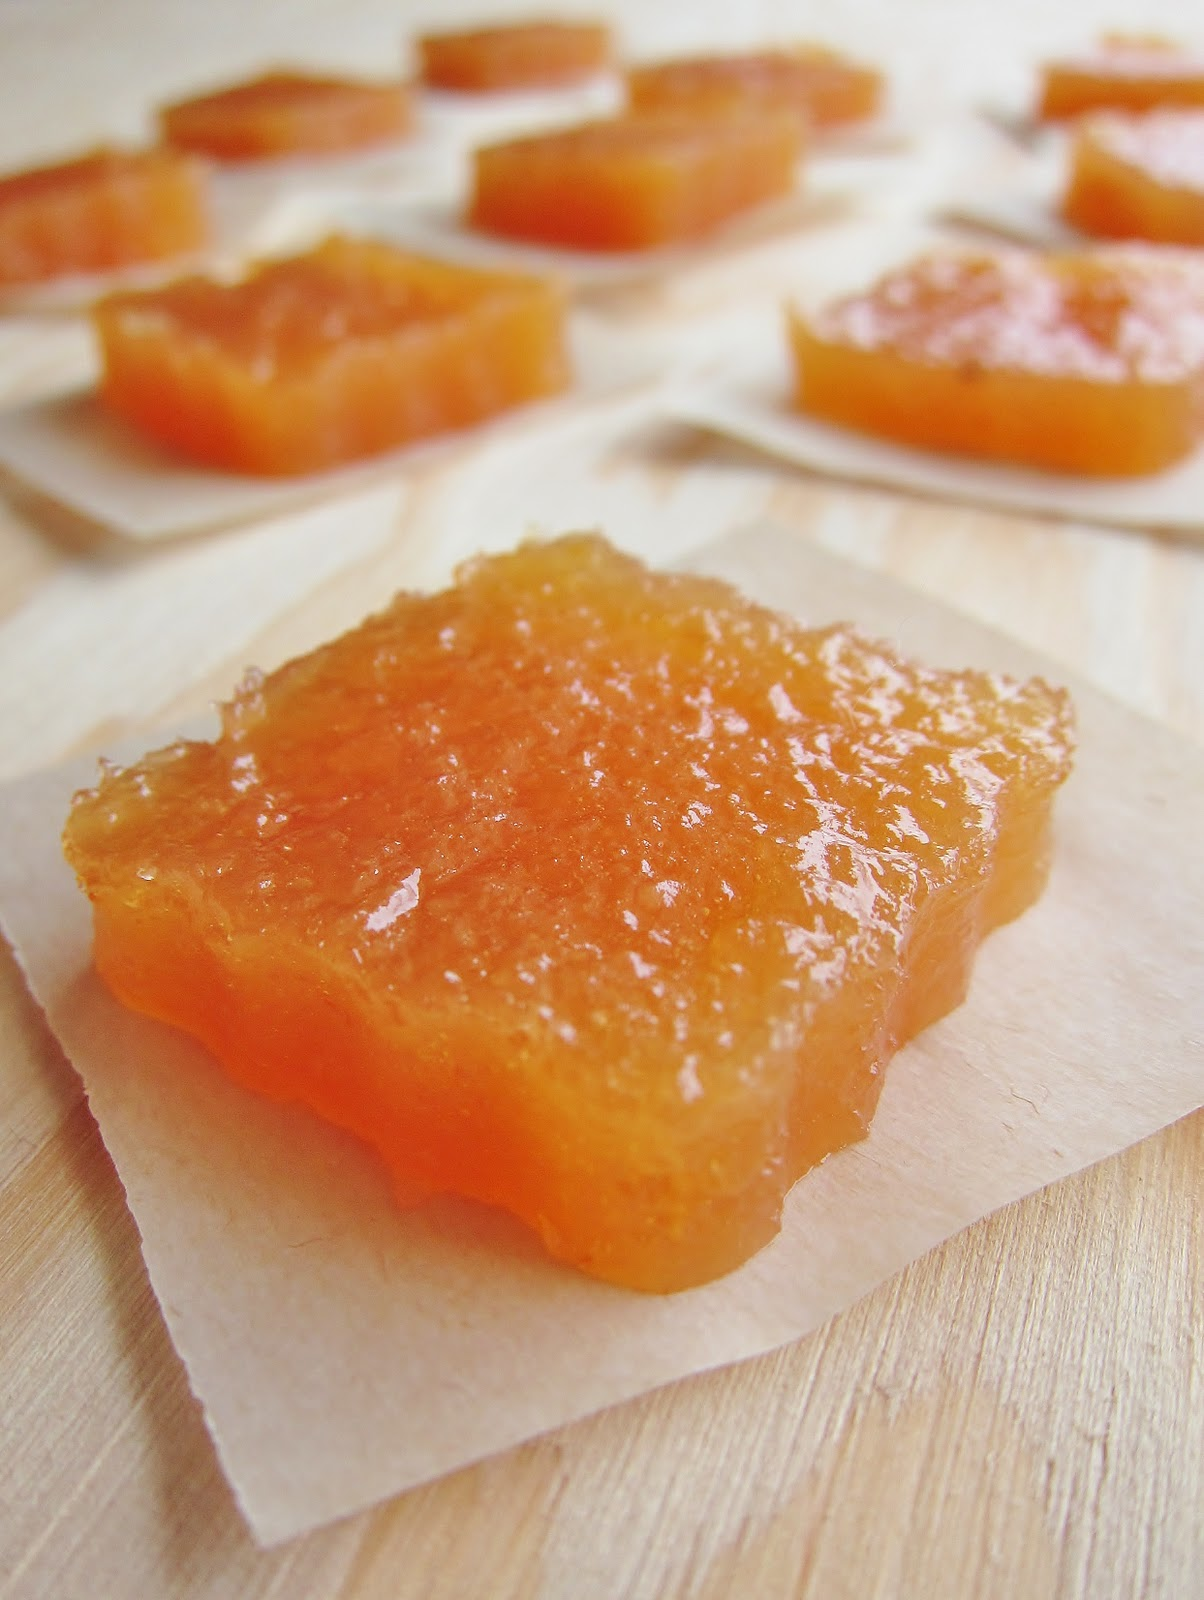 Arctic Garden Studio: Quince Paste (Membrillo)